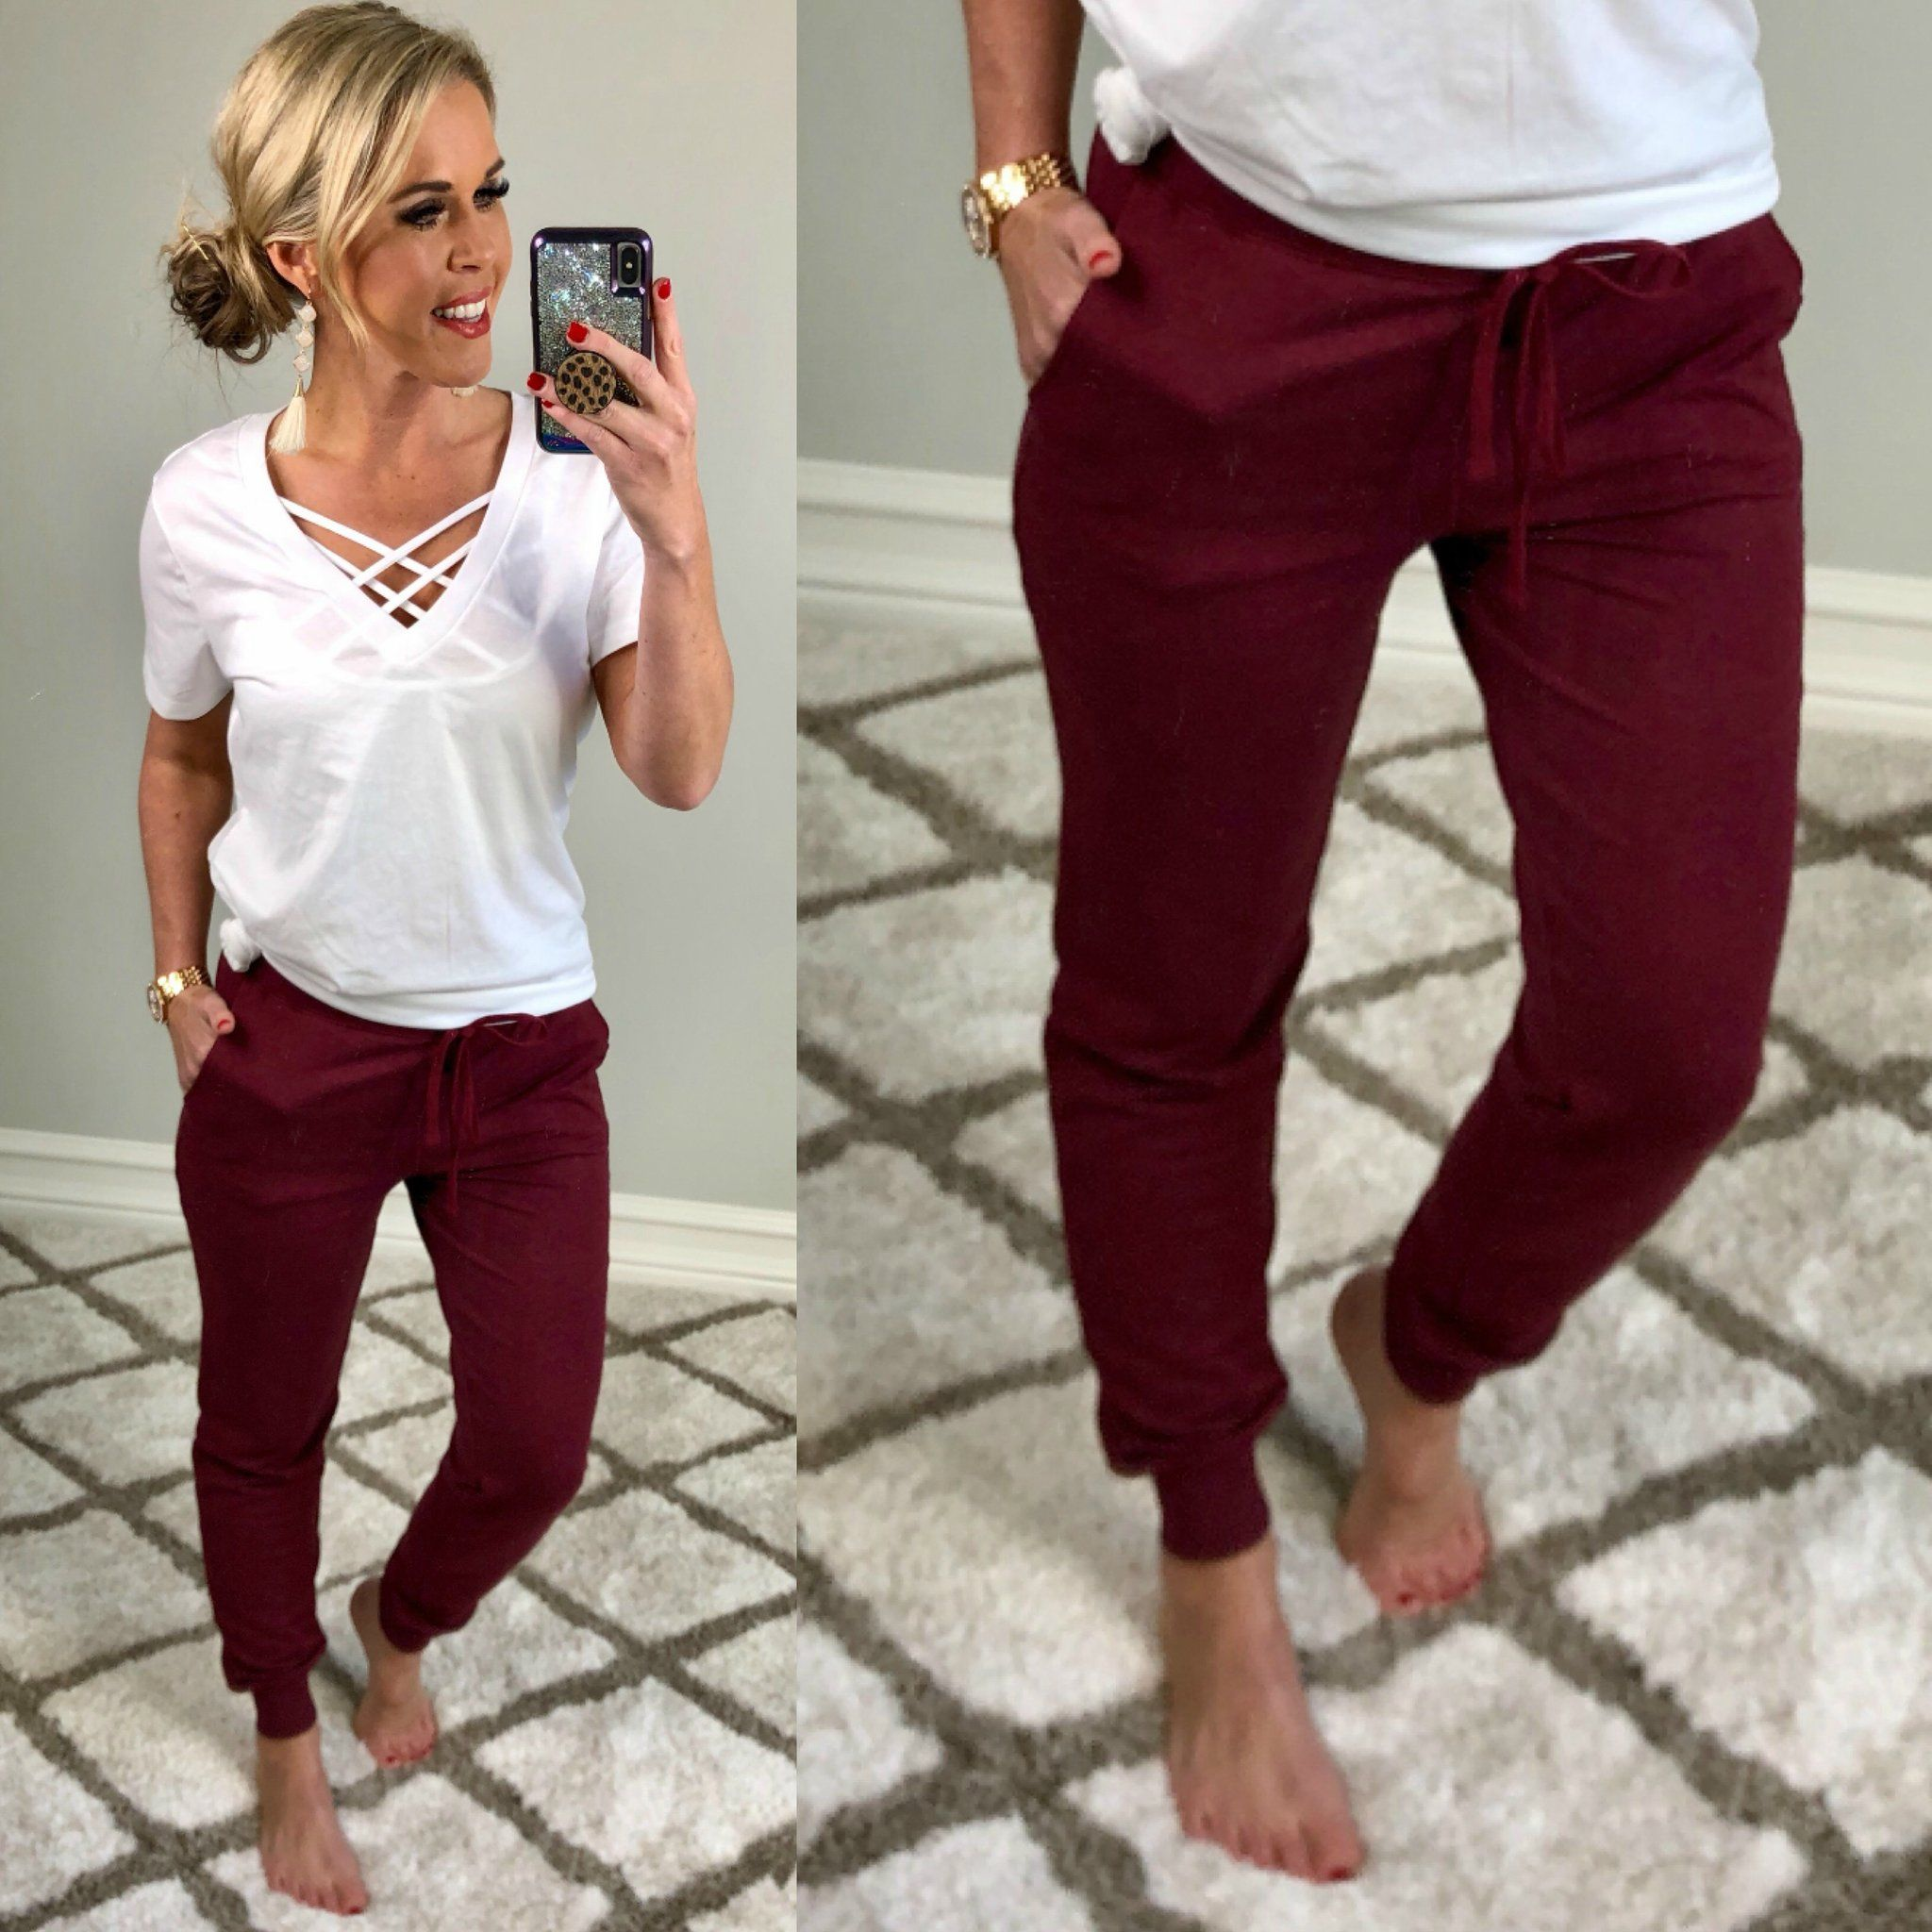 Burgundy Pocket Joggers -   18 fall outfits 2020 for women over 50 ideas